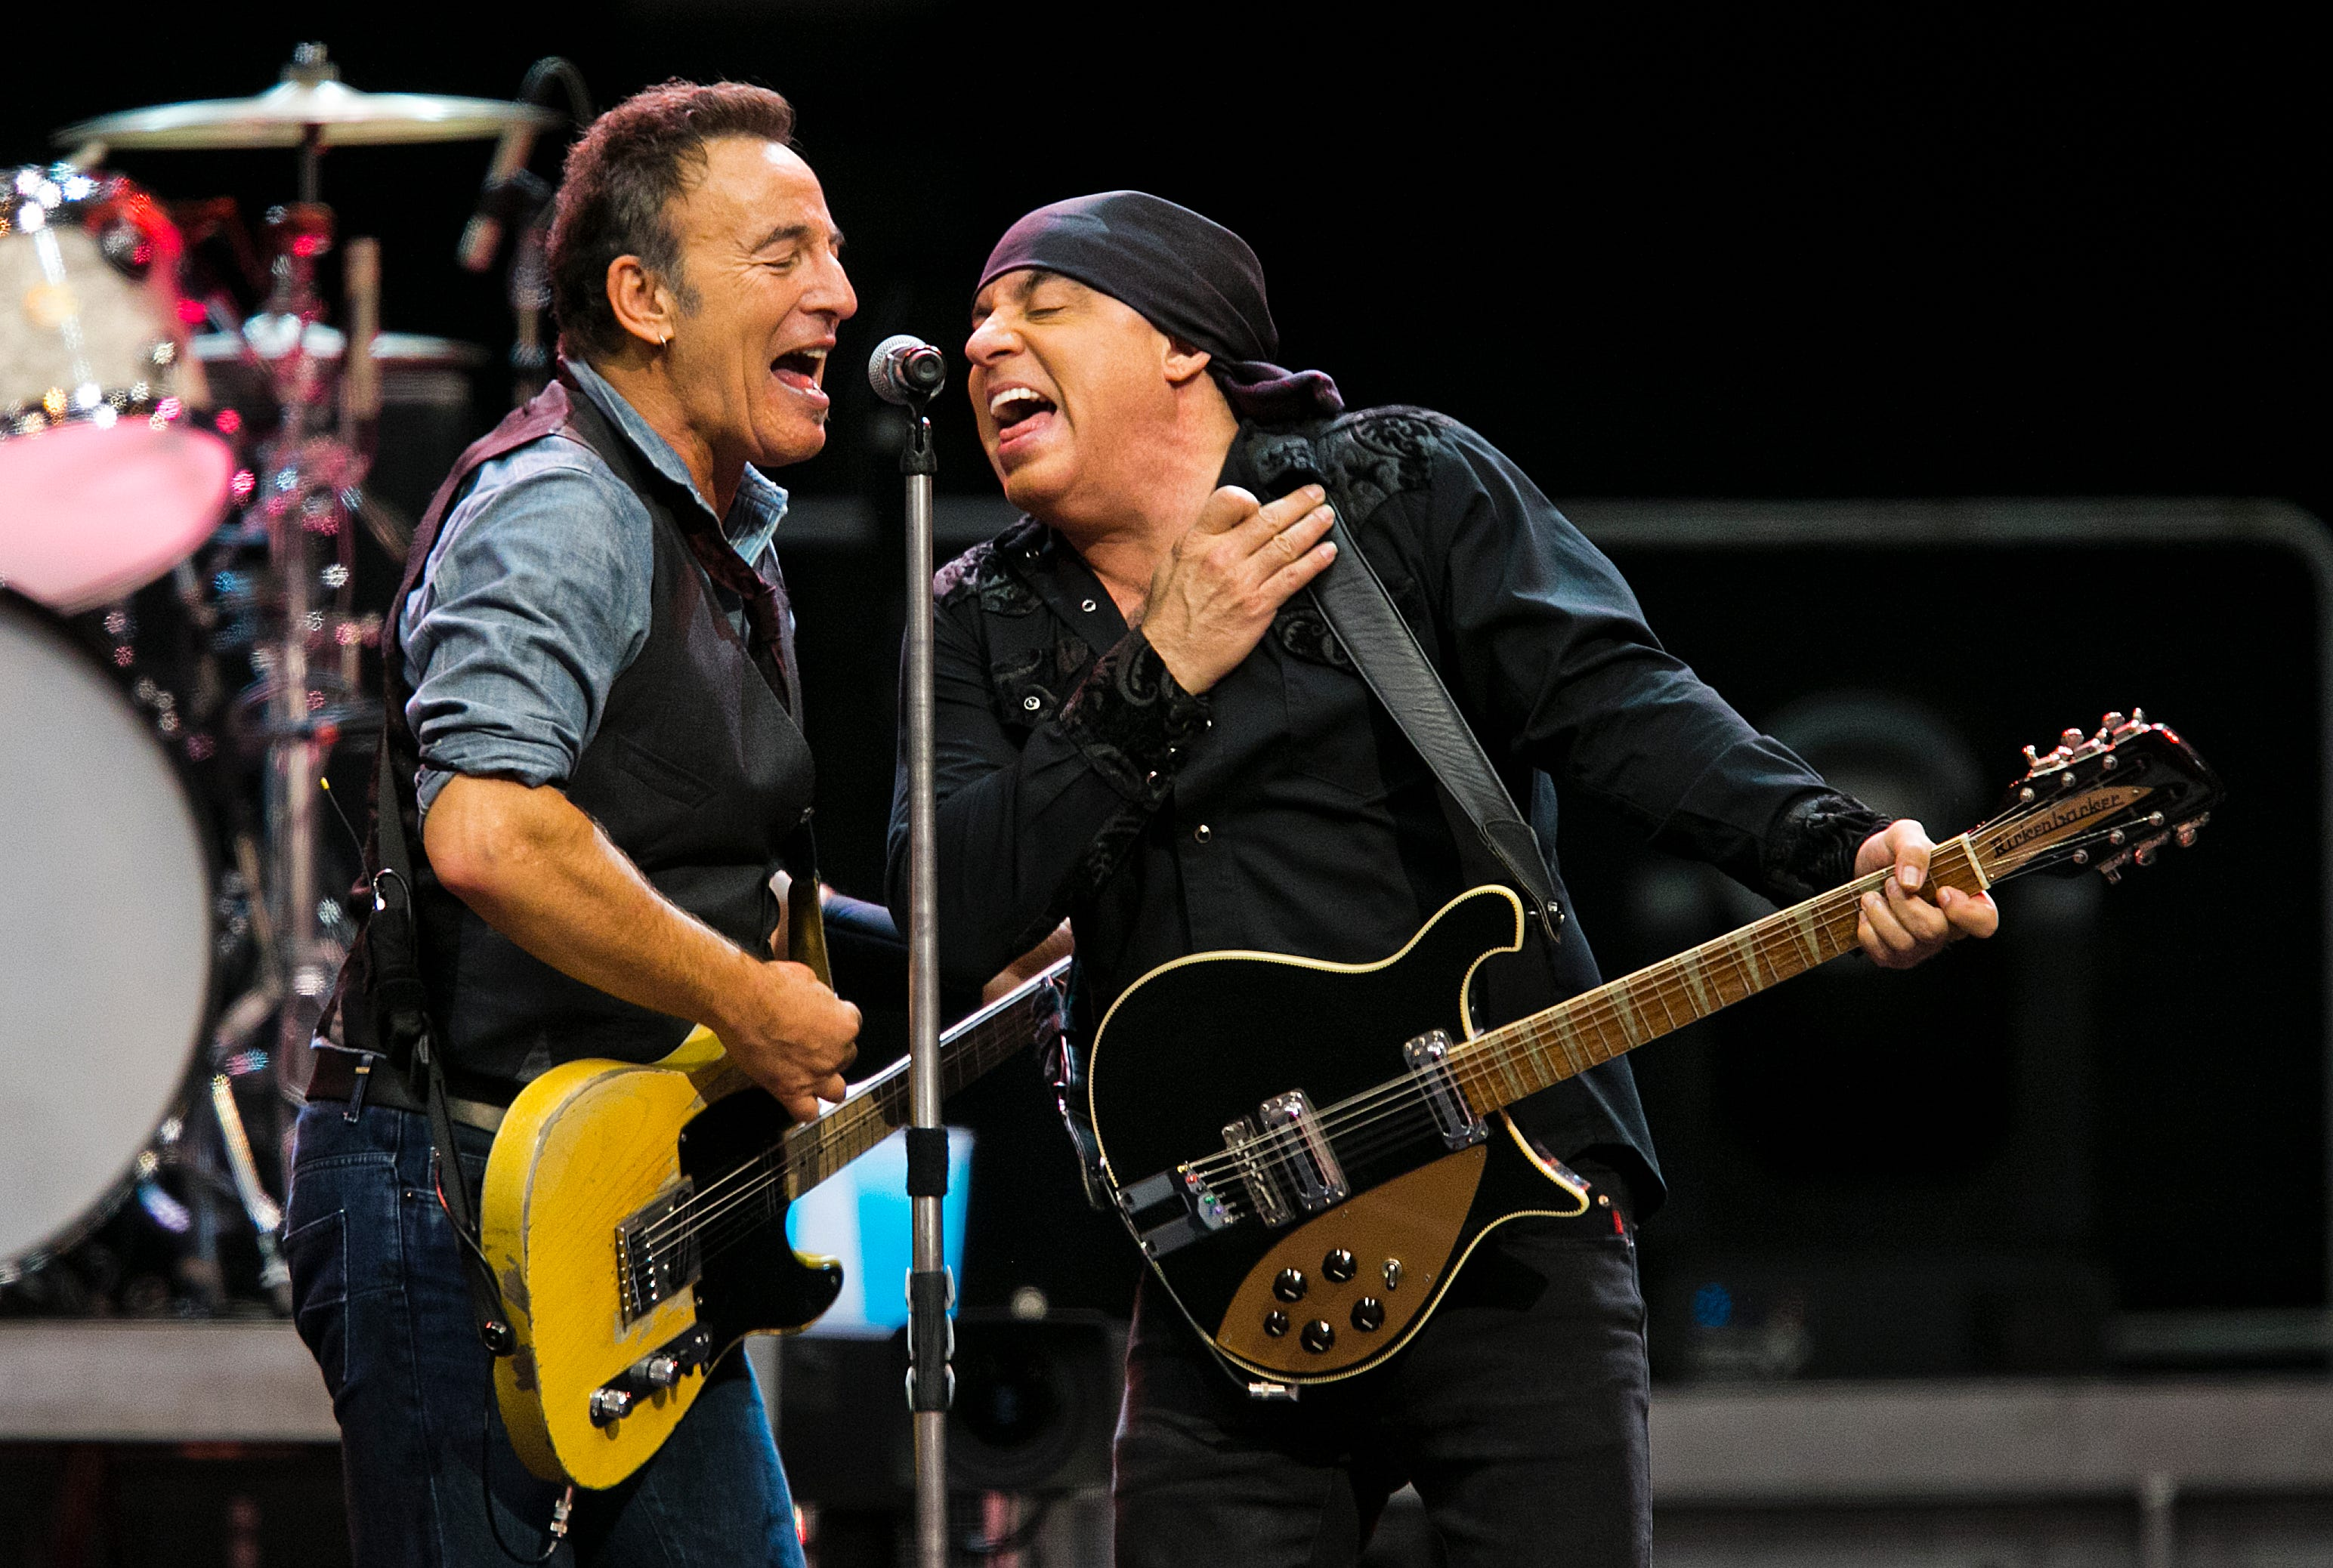 march concert guide bruce springsteen, future, beck, more in metromarch concert guide bruce springsteen, future, beck, more in metro phoenix